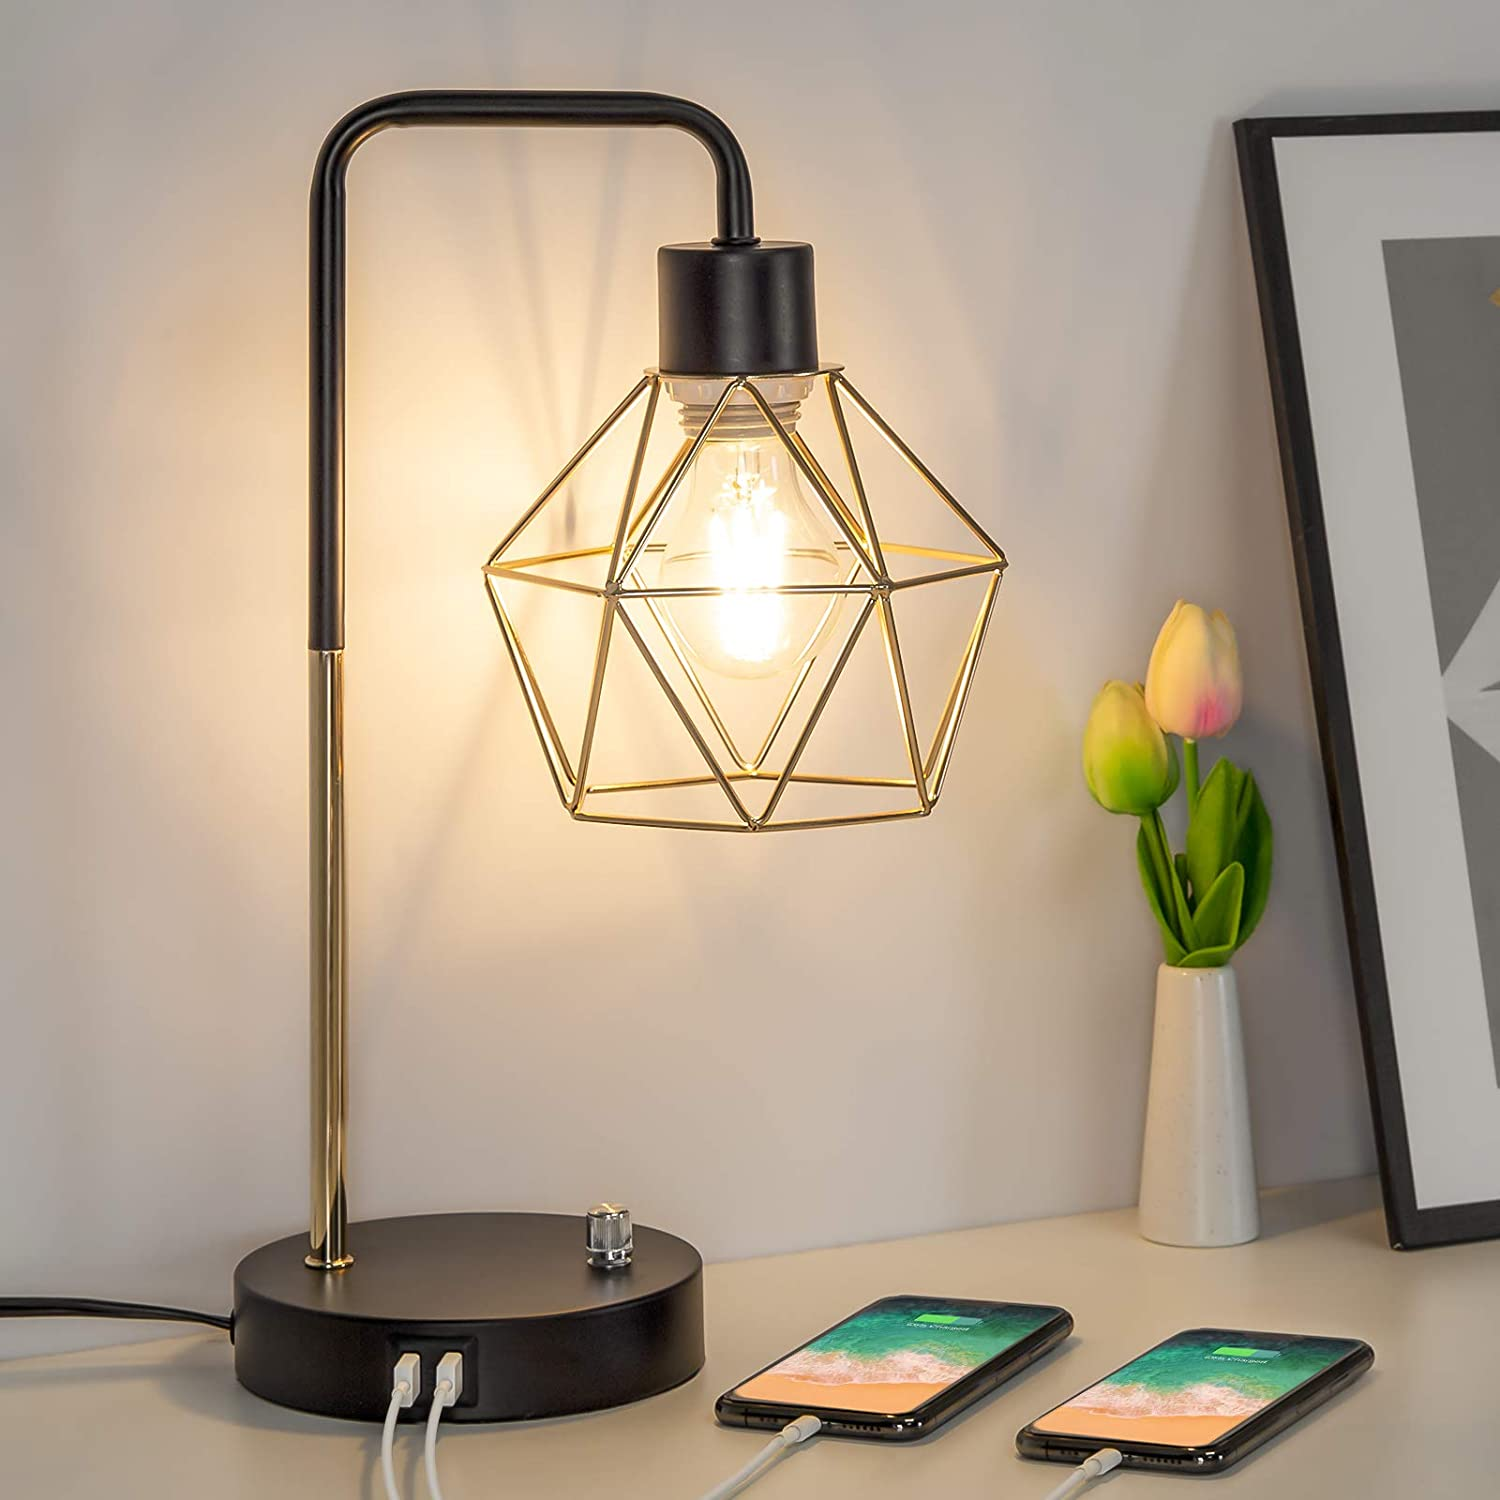 Dimmable USB Bedside Lamp Industrial C Table with 売れ筋 Dual セール